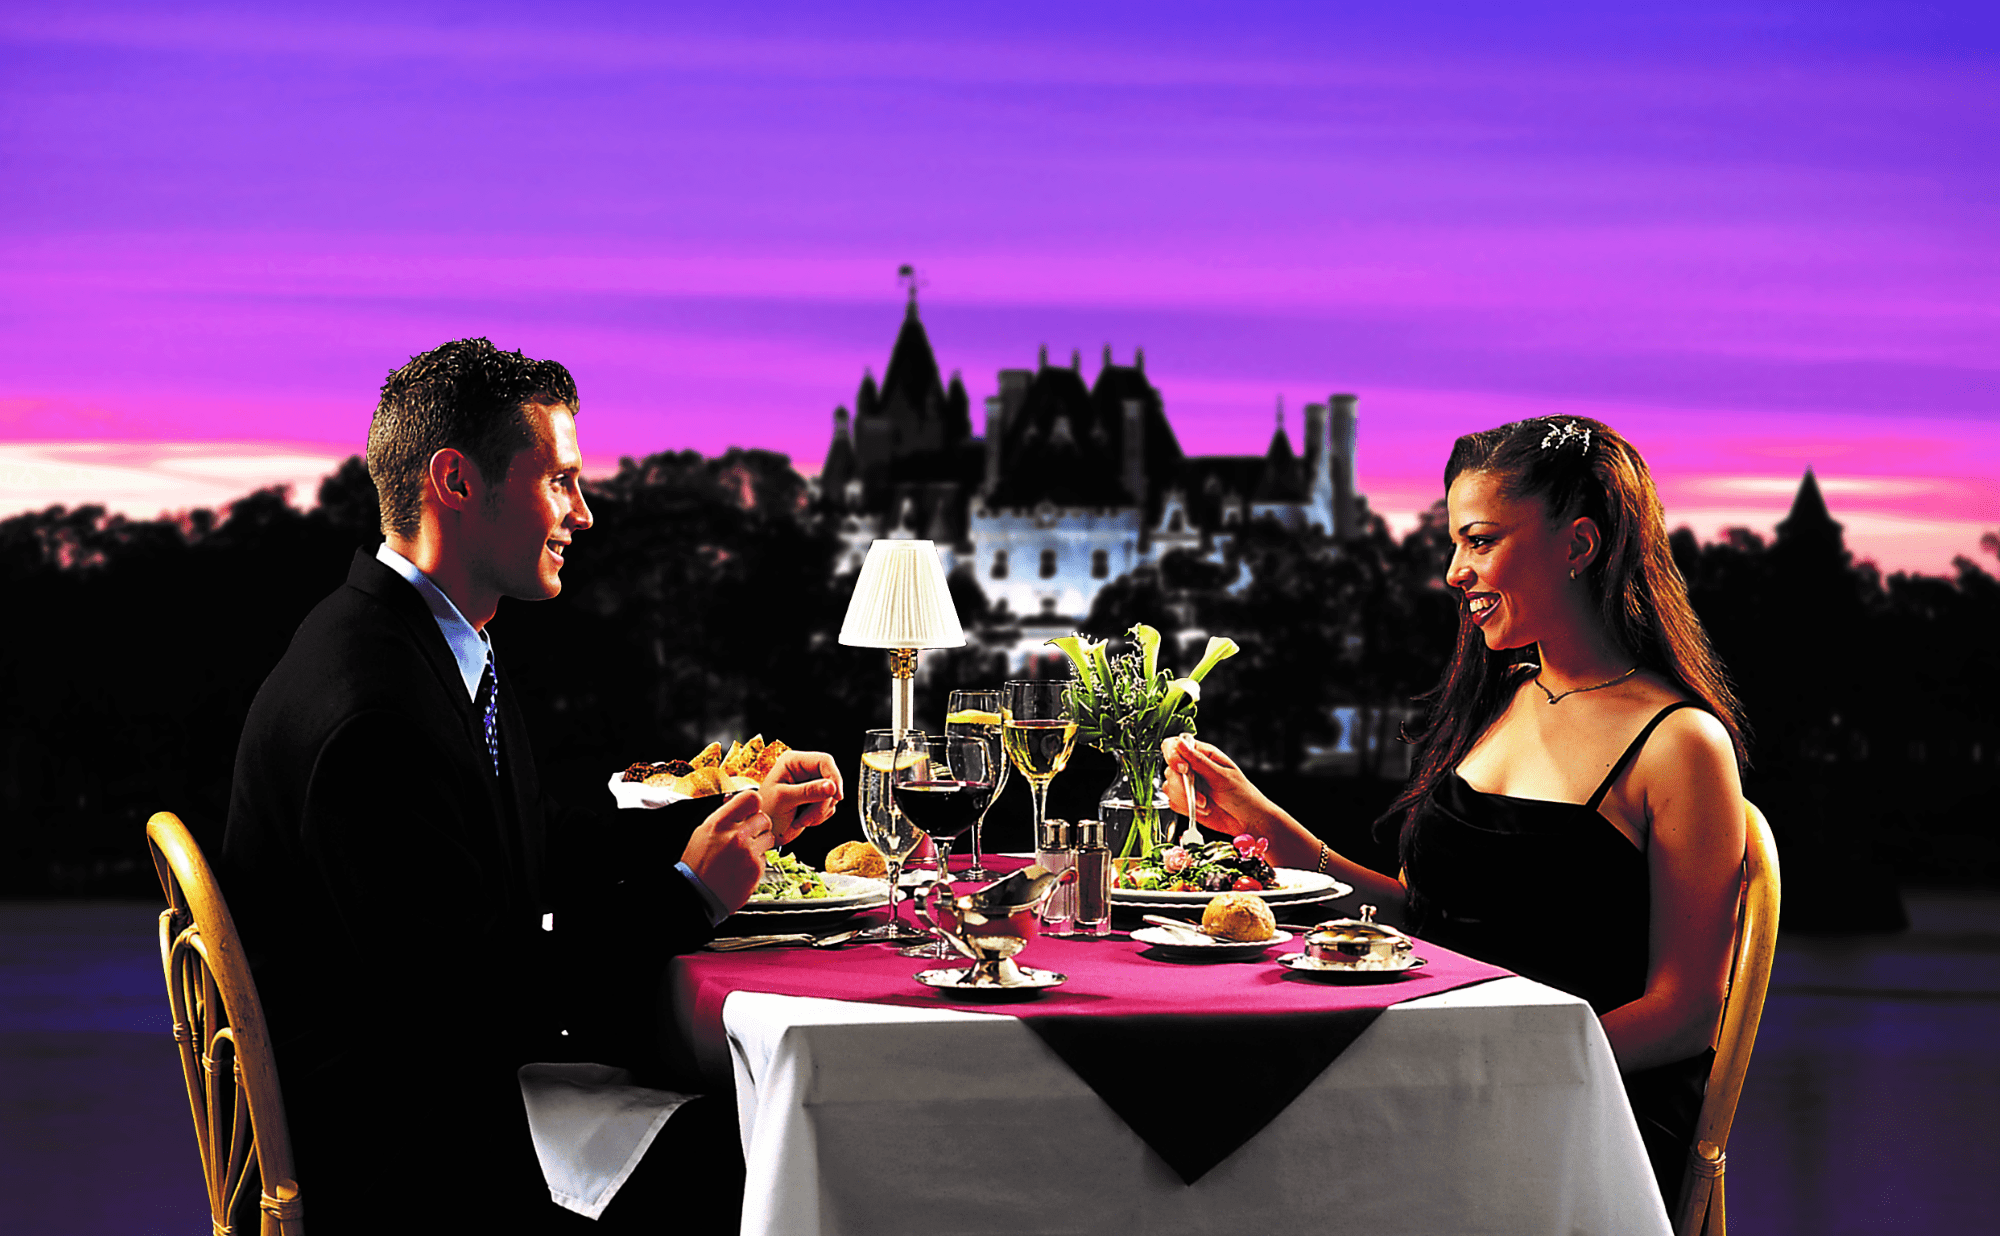 A couple enjoys a sunset dinner in front of a castle at riveredge resort